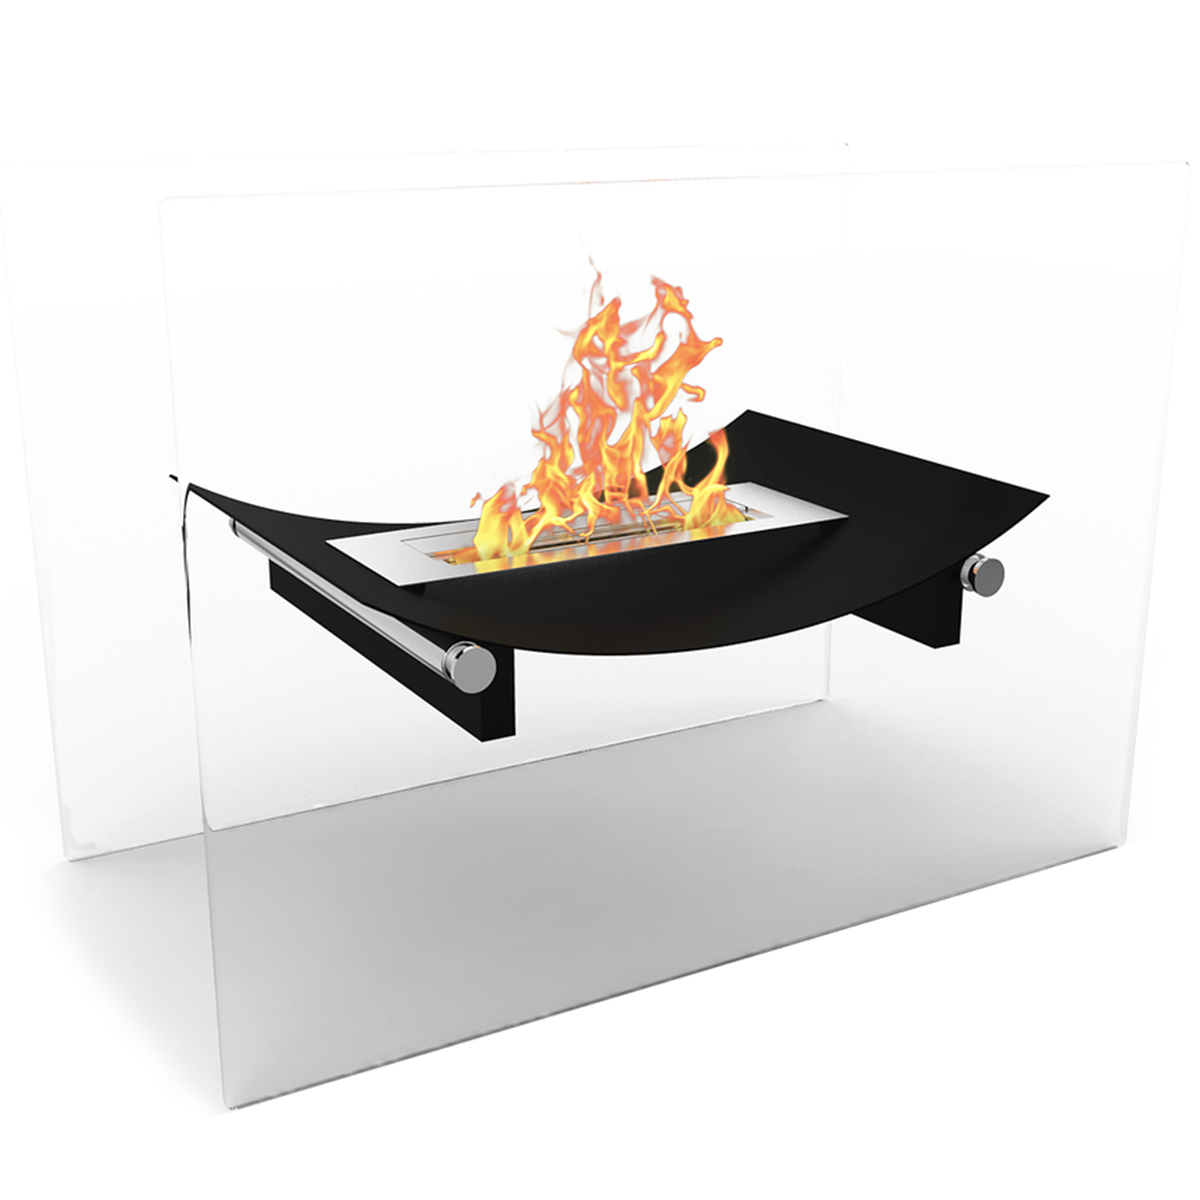 Regal Flame Black Alor Ventless Free Standing Ethanol Fireplace Can Be Used as a Indoor, Outdoor, Gas Log Inserts, Vent Free, El